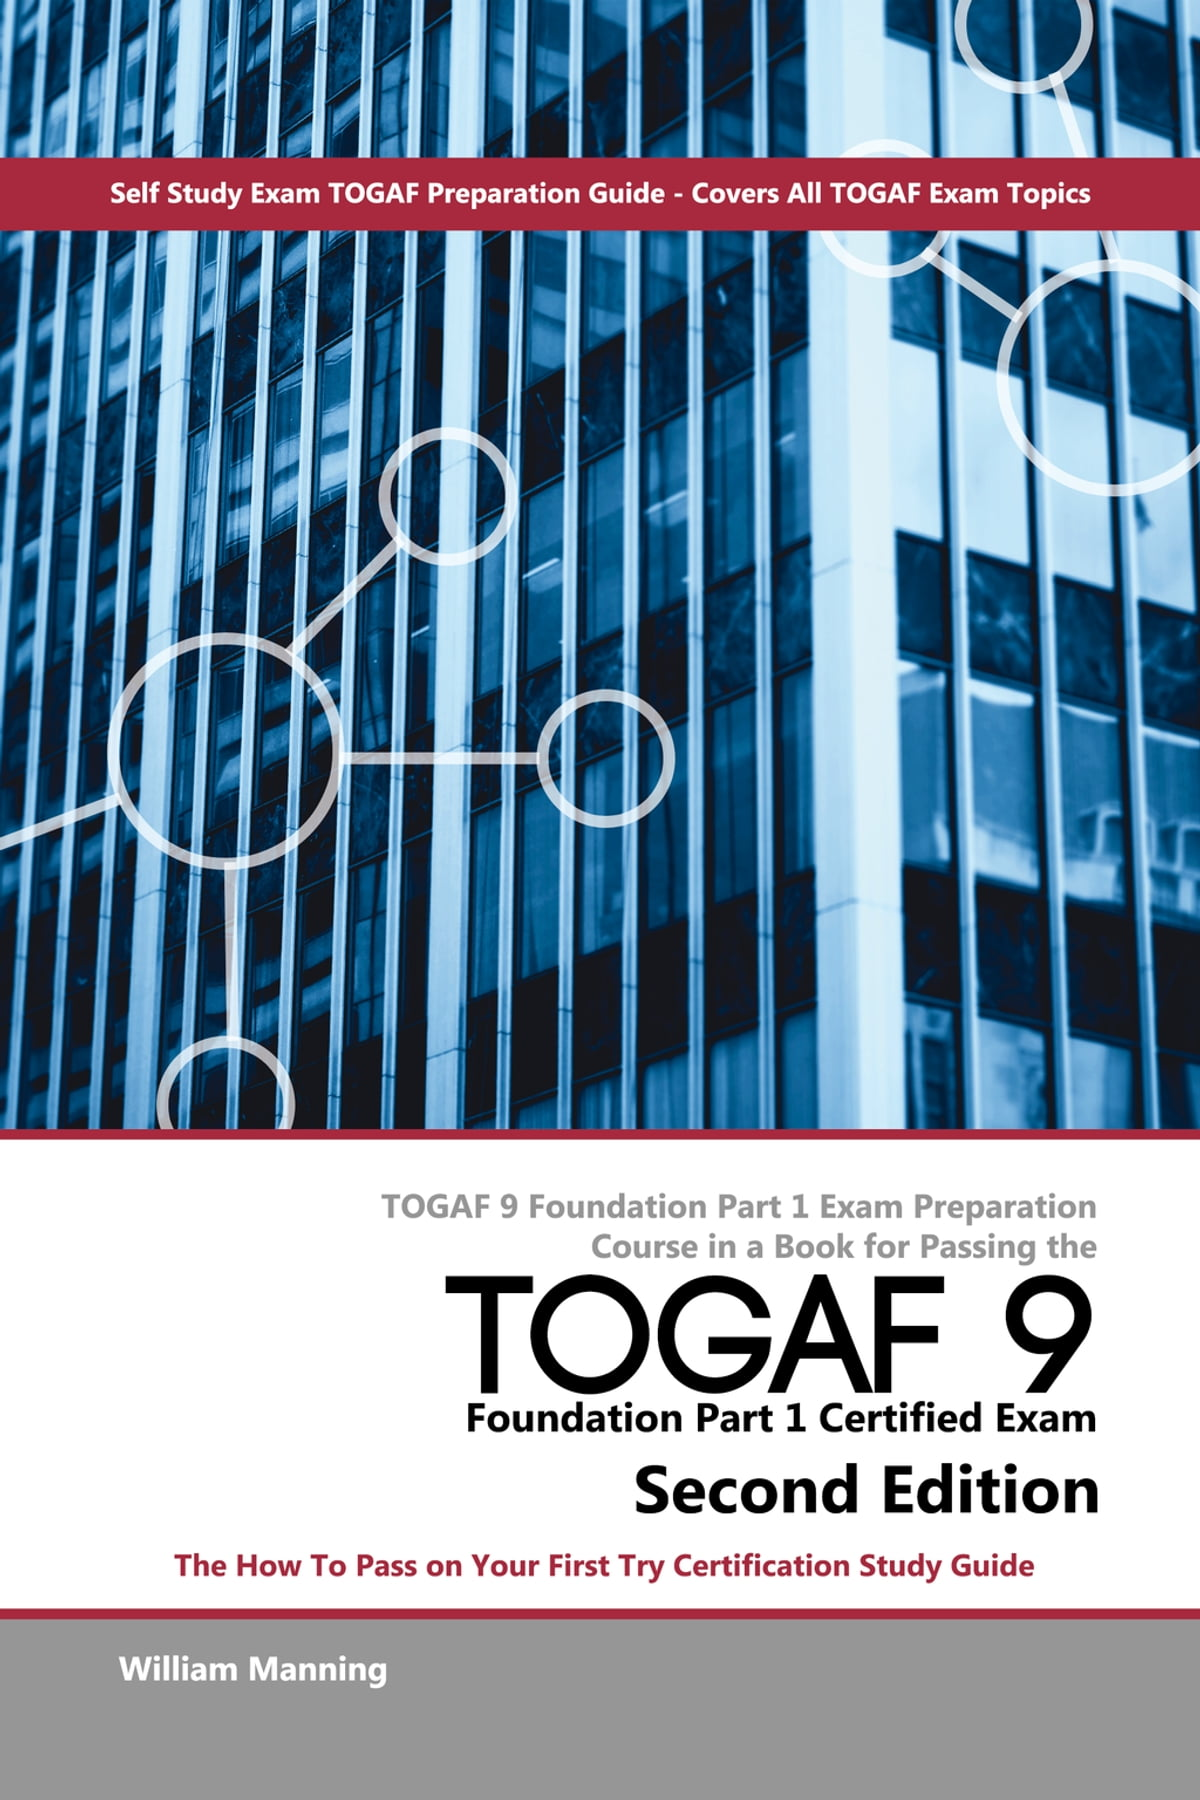 Togaf 9 foundation part 1 exam preparation course in a book for togaf 9 foundation part 1 exam preparation course in a book for passing the togaf 9 foundation part 1 certified exam the how to pass on your first try xflitez Gallery